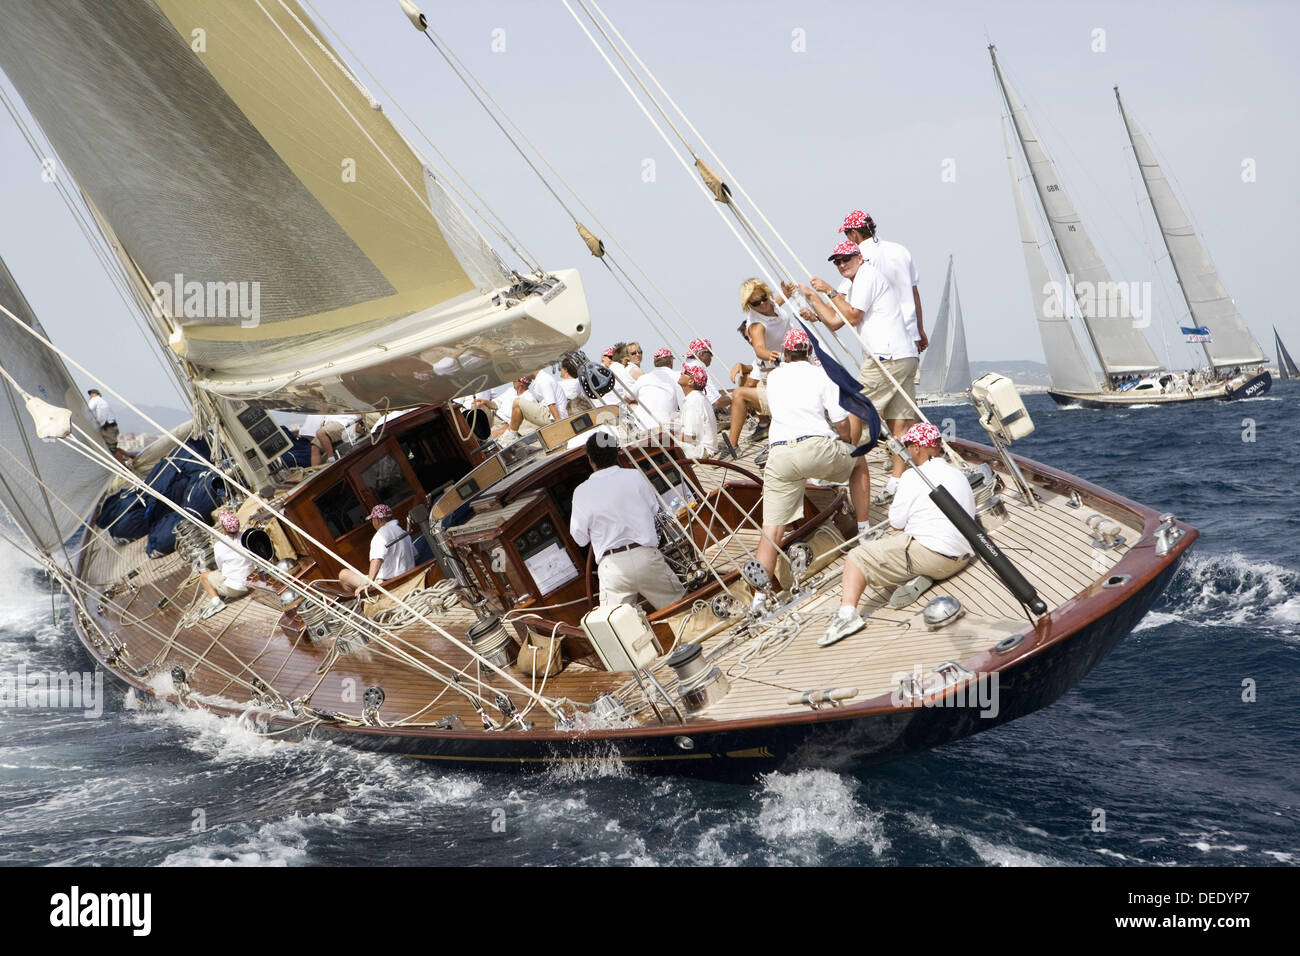 The Superyacht Cup, Palma de Mallorca, Spain Stock Photo